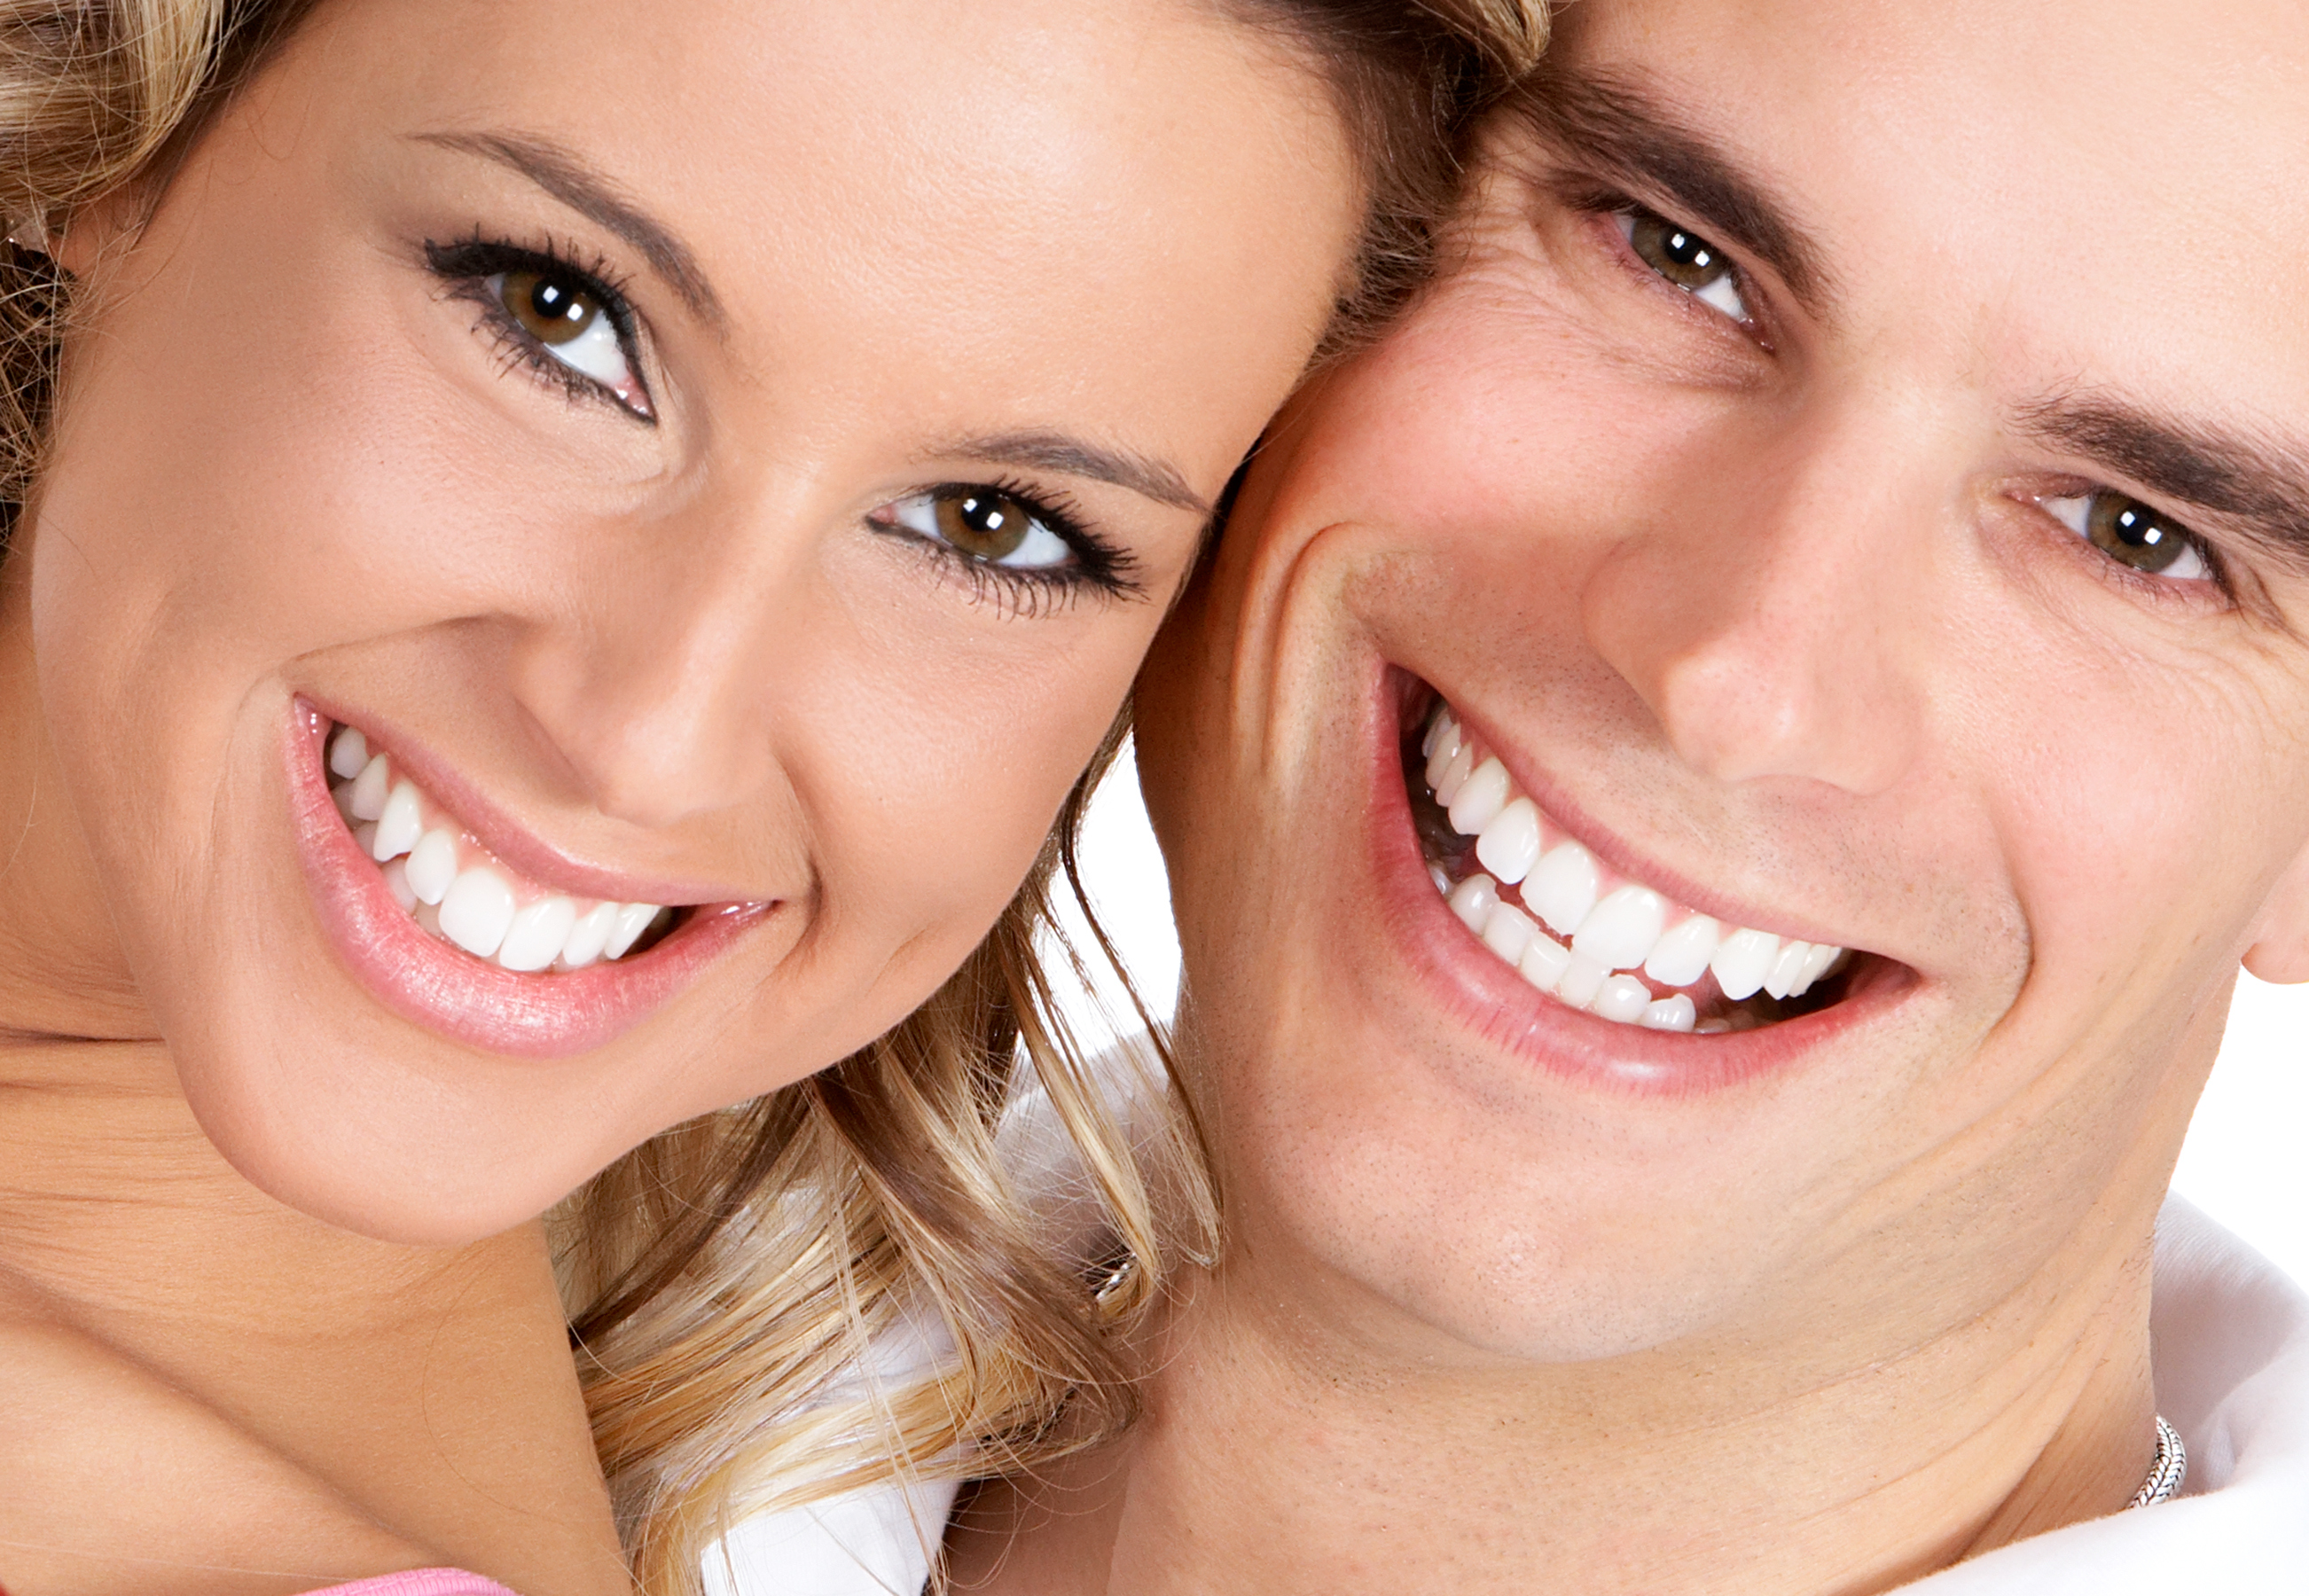 South Attleboro Dentist | James M. Phelan, DMD, MAGD | Exquisite ...